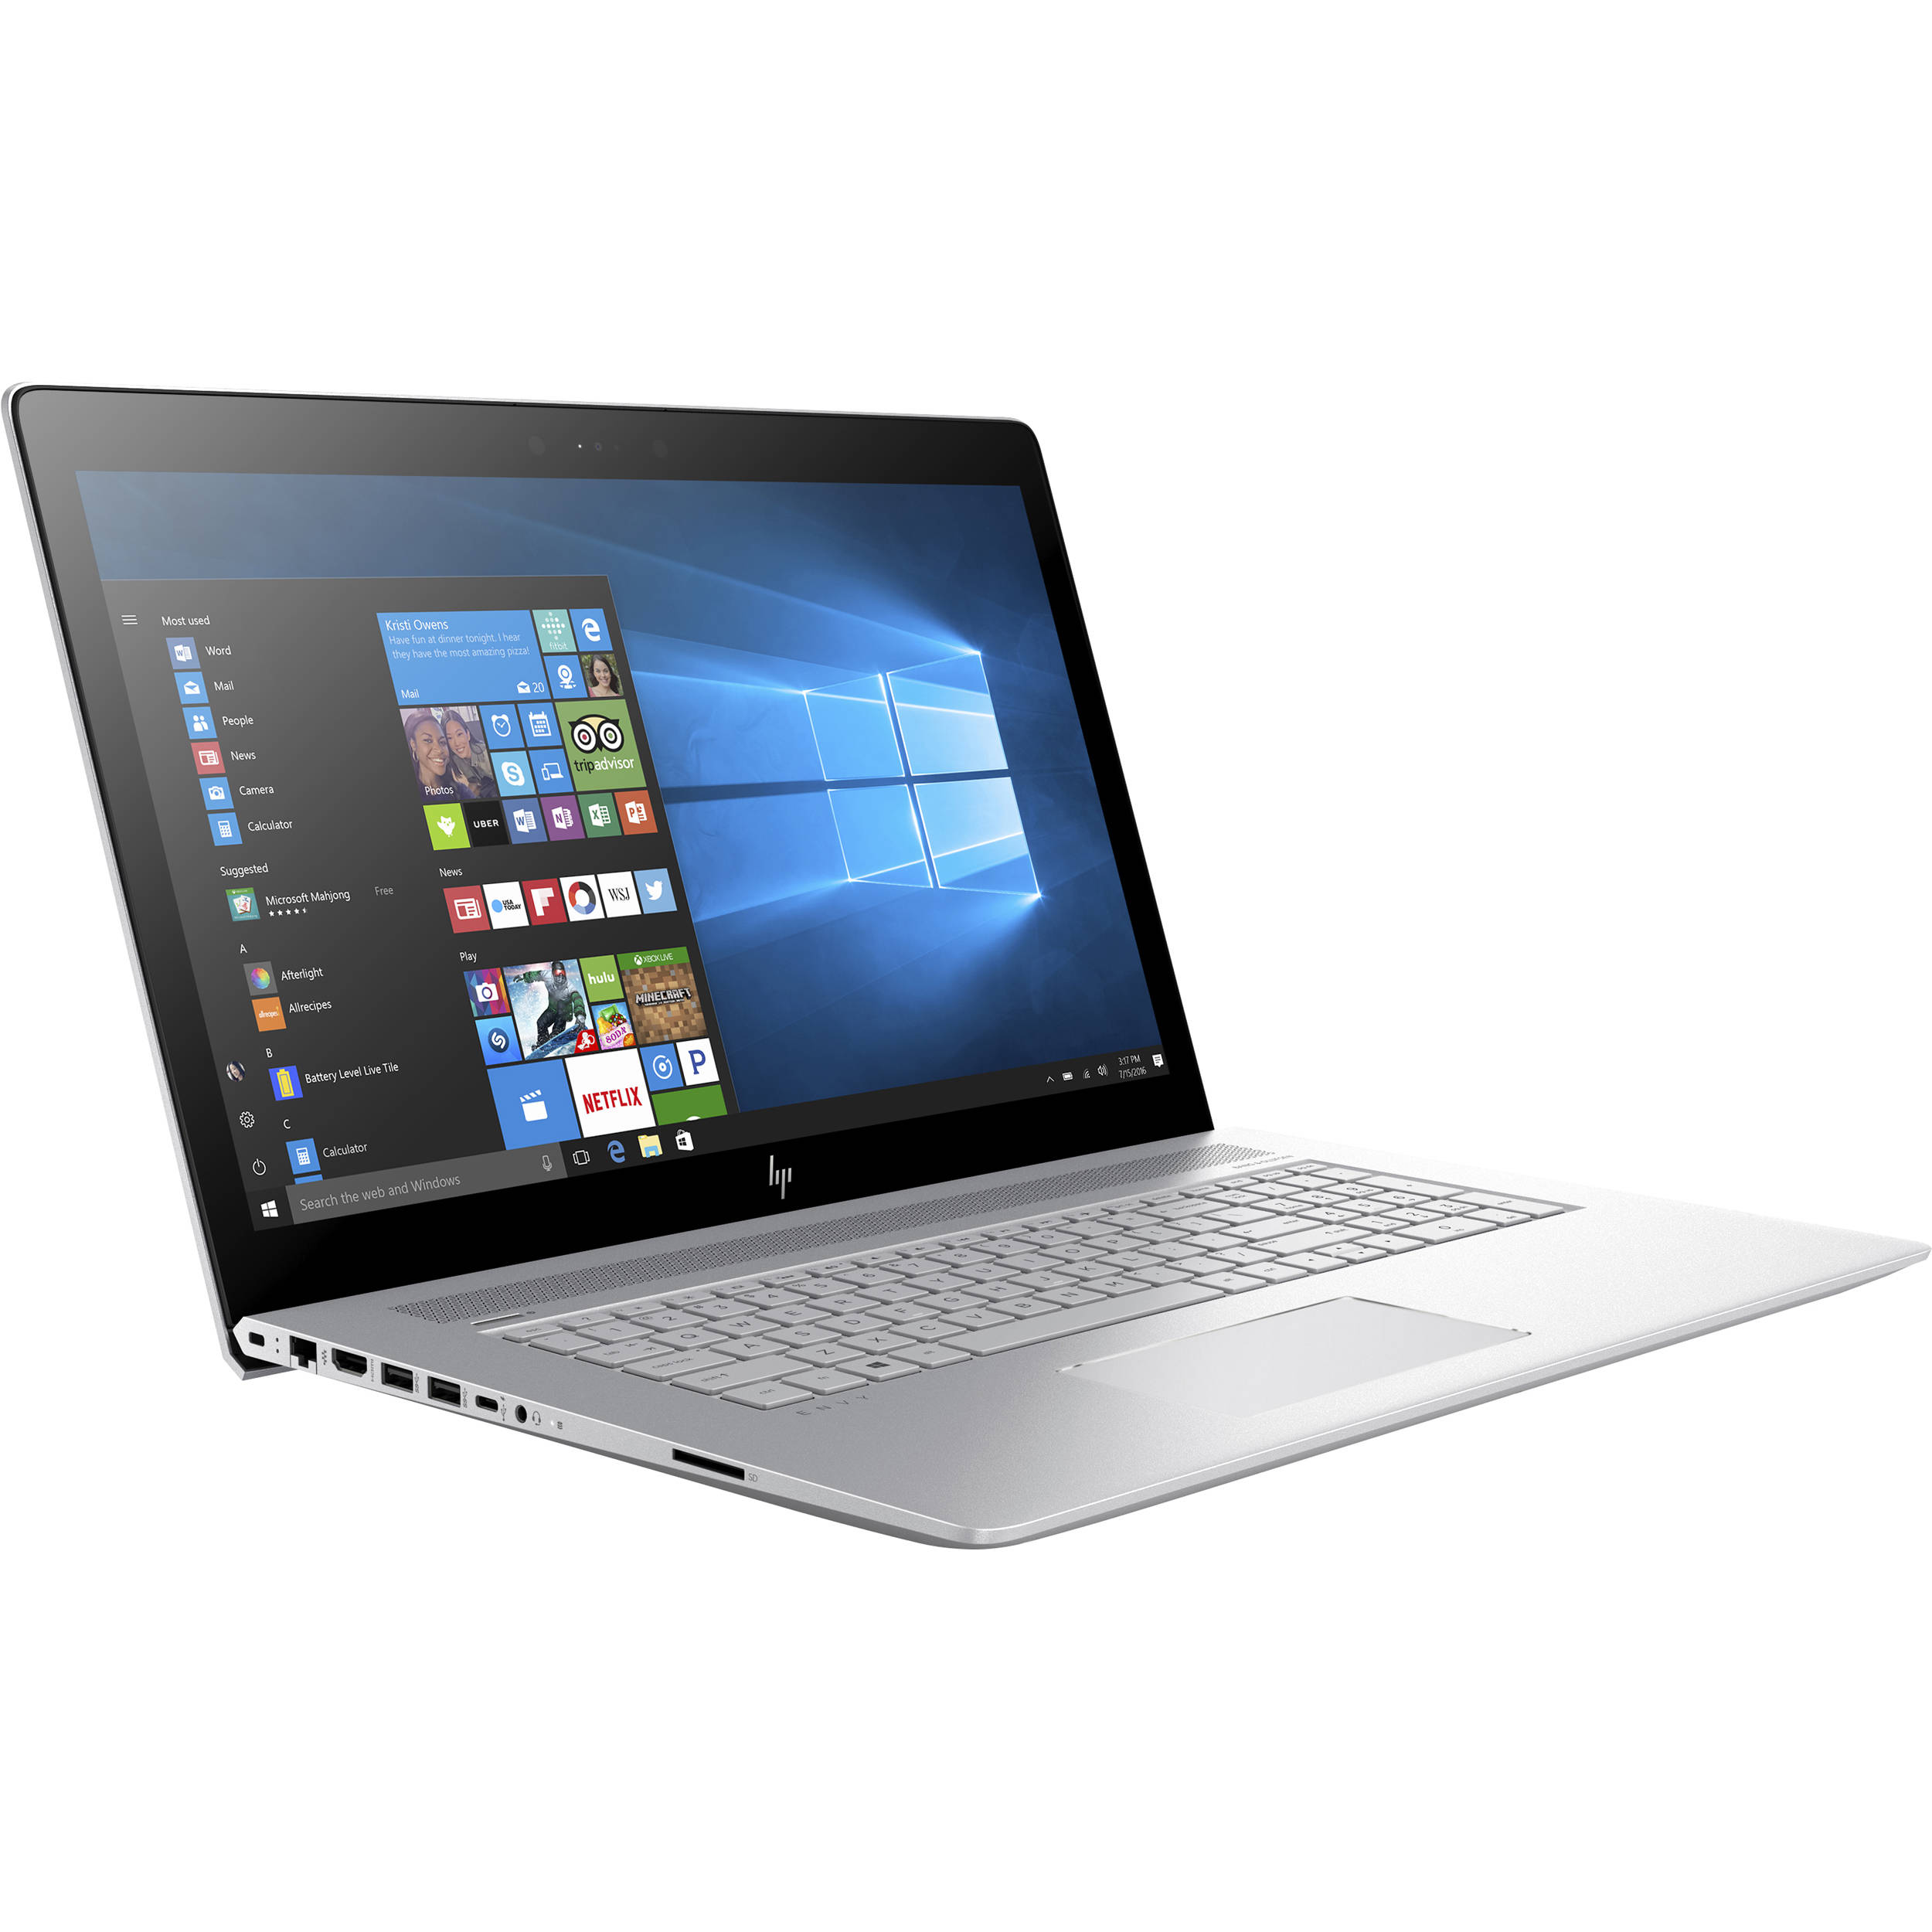 "HP 17.3"" ENVY 17-ae110nr Multi-Touch Laptop"